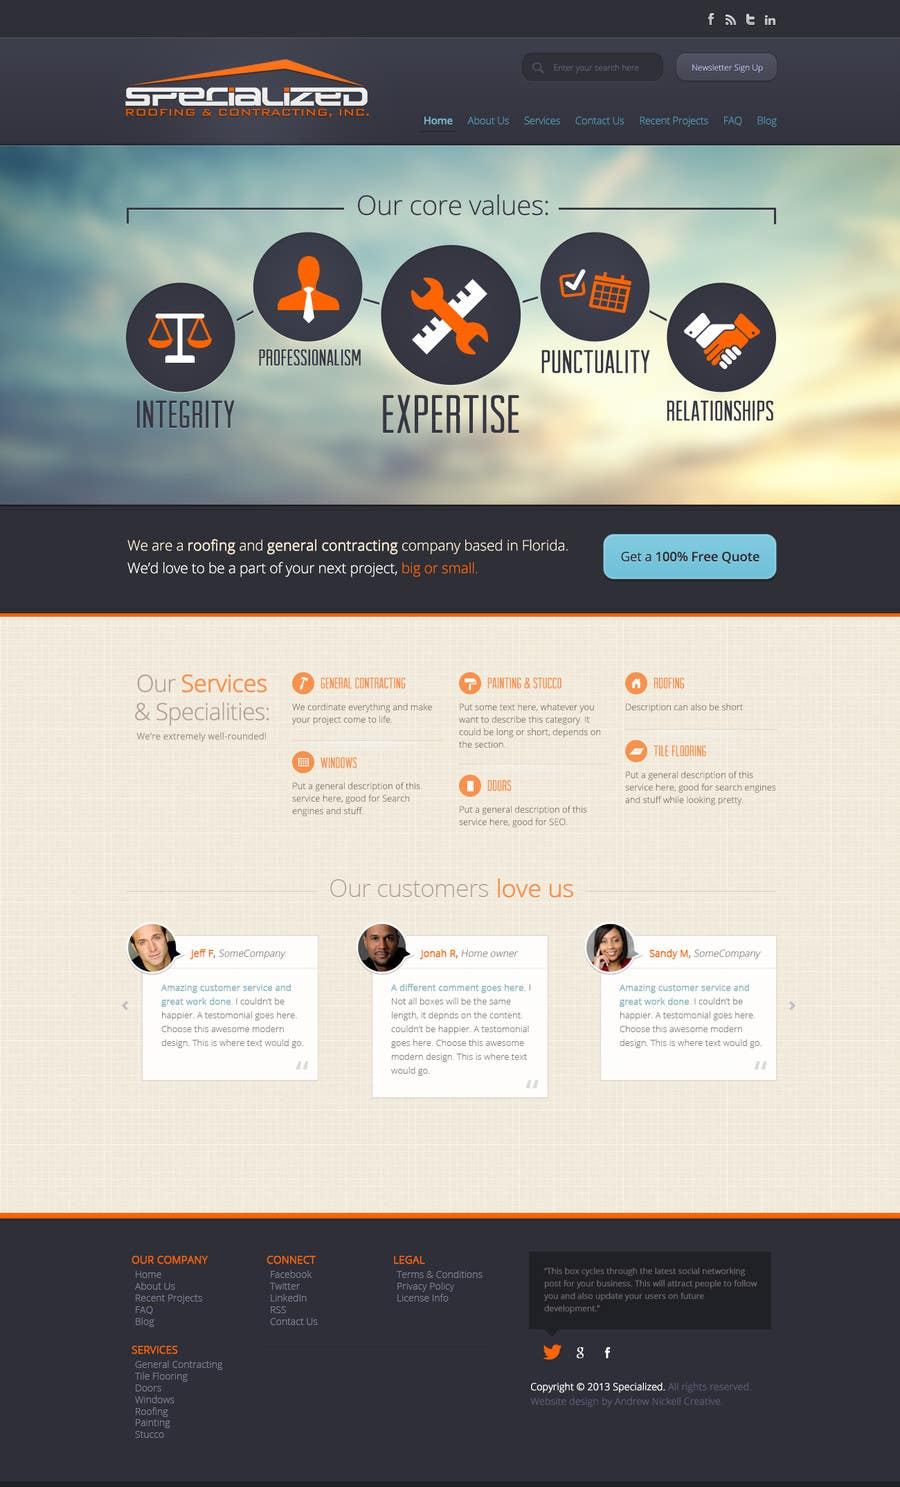 Bài tham dự cuộc thi #                                        3                                      cho                                         Wordpress Theme Design for Specialized Roofing & Contracting Inc.